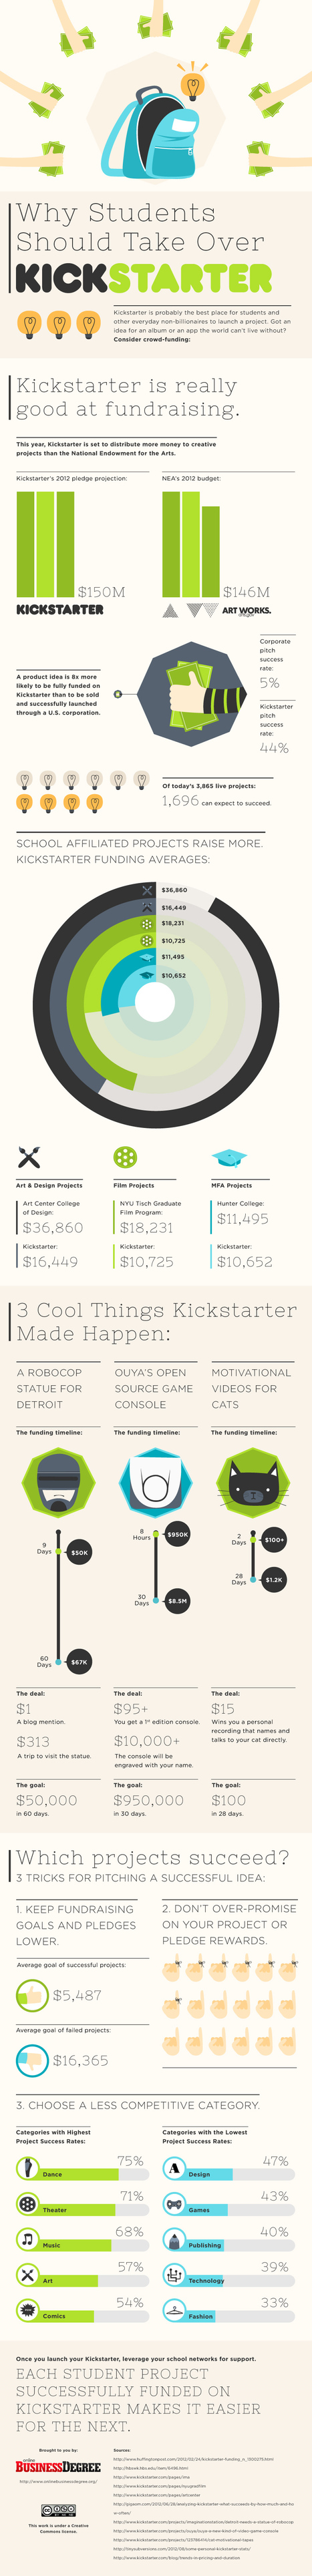 Excellent Infographic! Can Students Take Over Kickstarter? Crowdsourcing Gazette UK | Young Adult and Children's Stories | Scoop.it